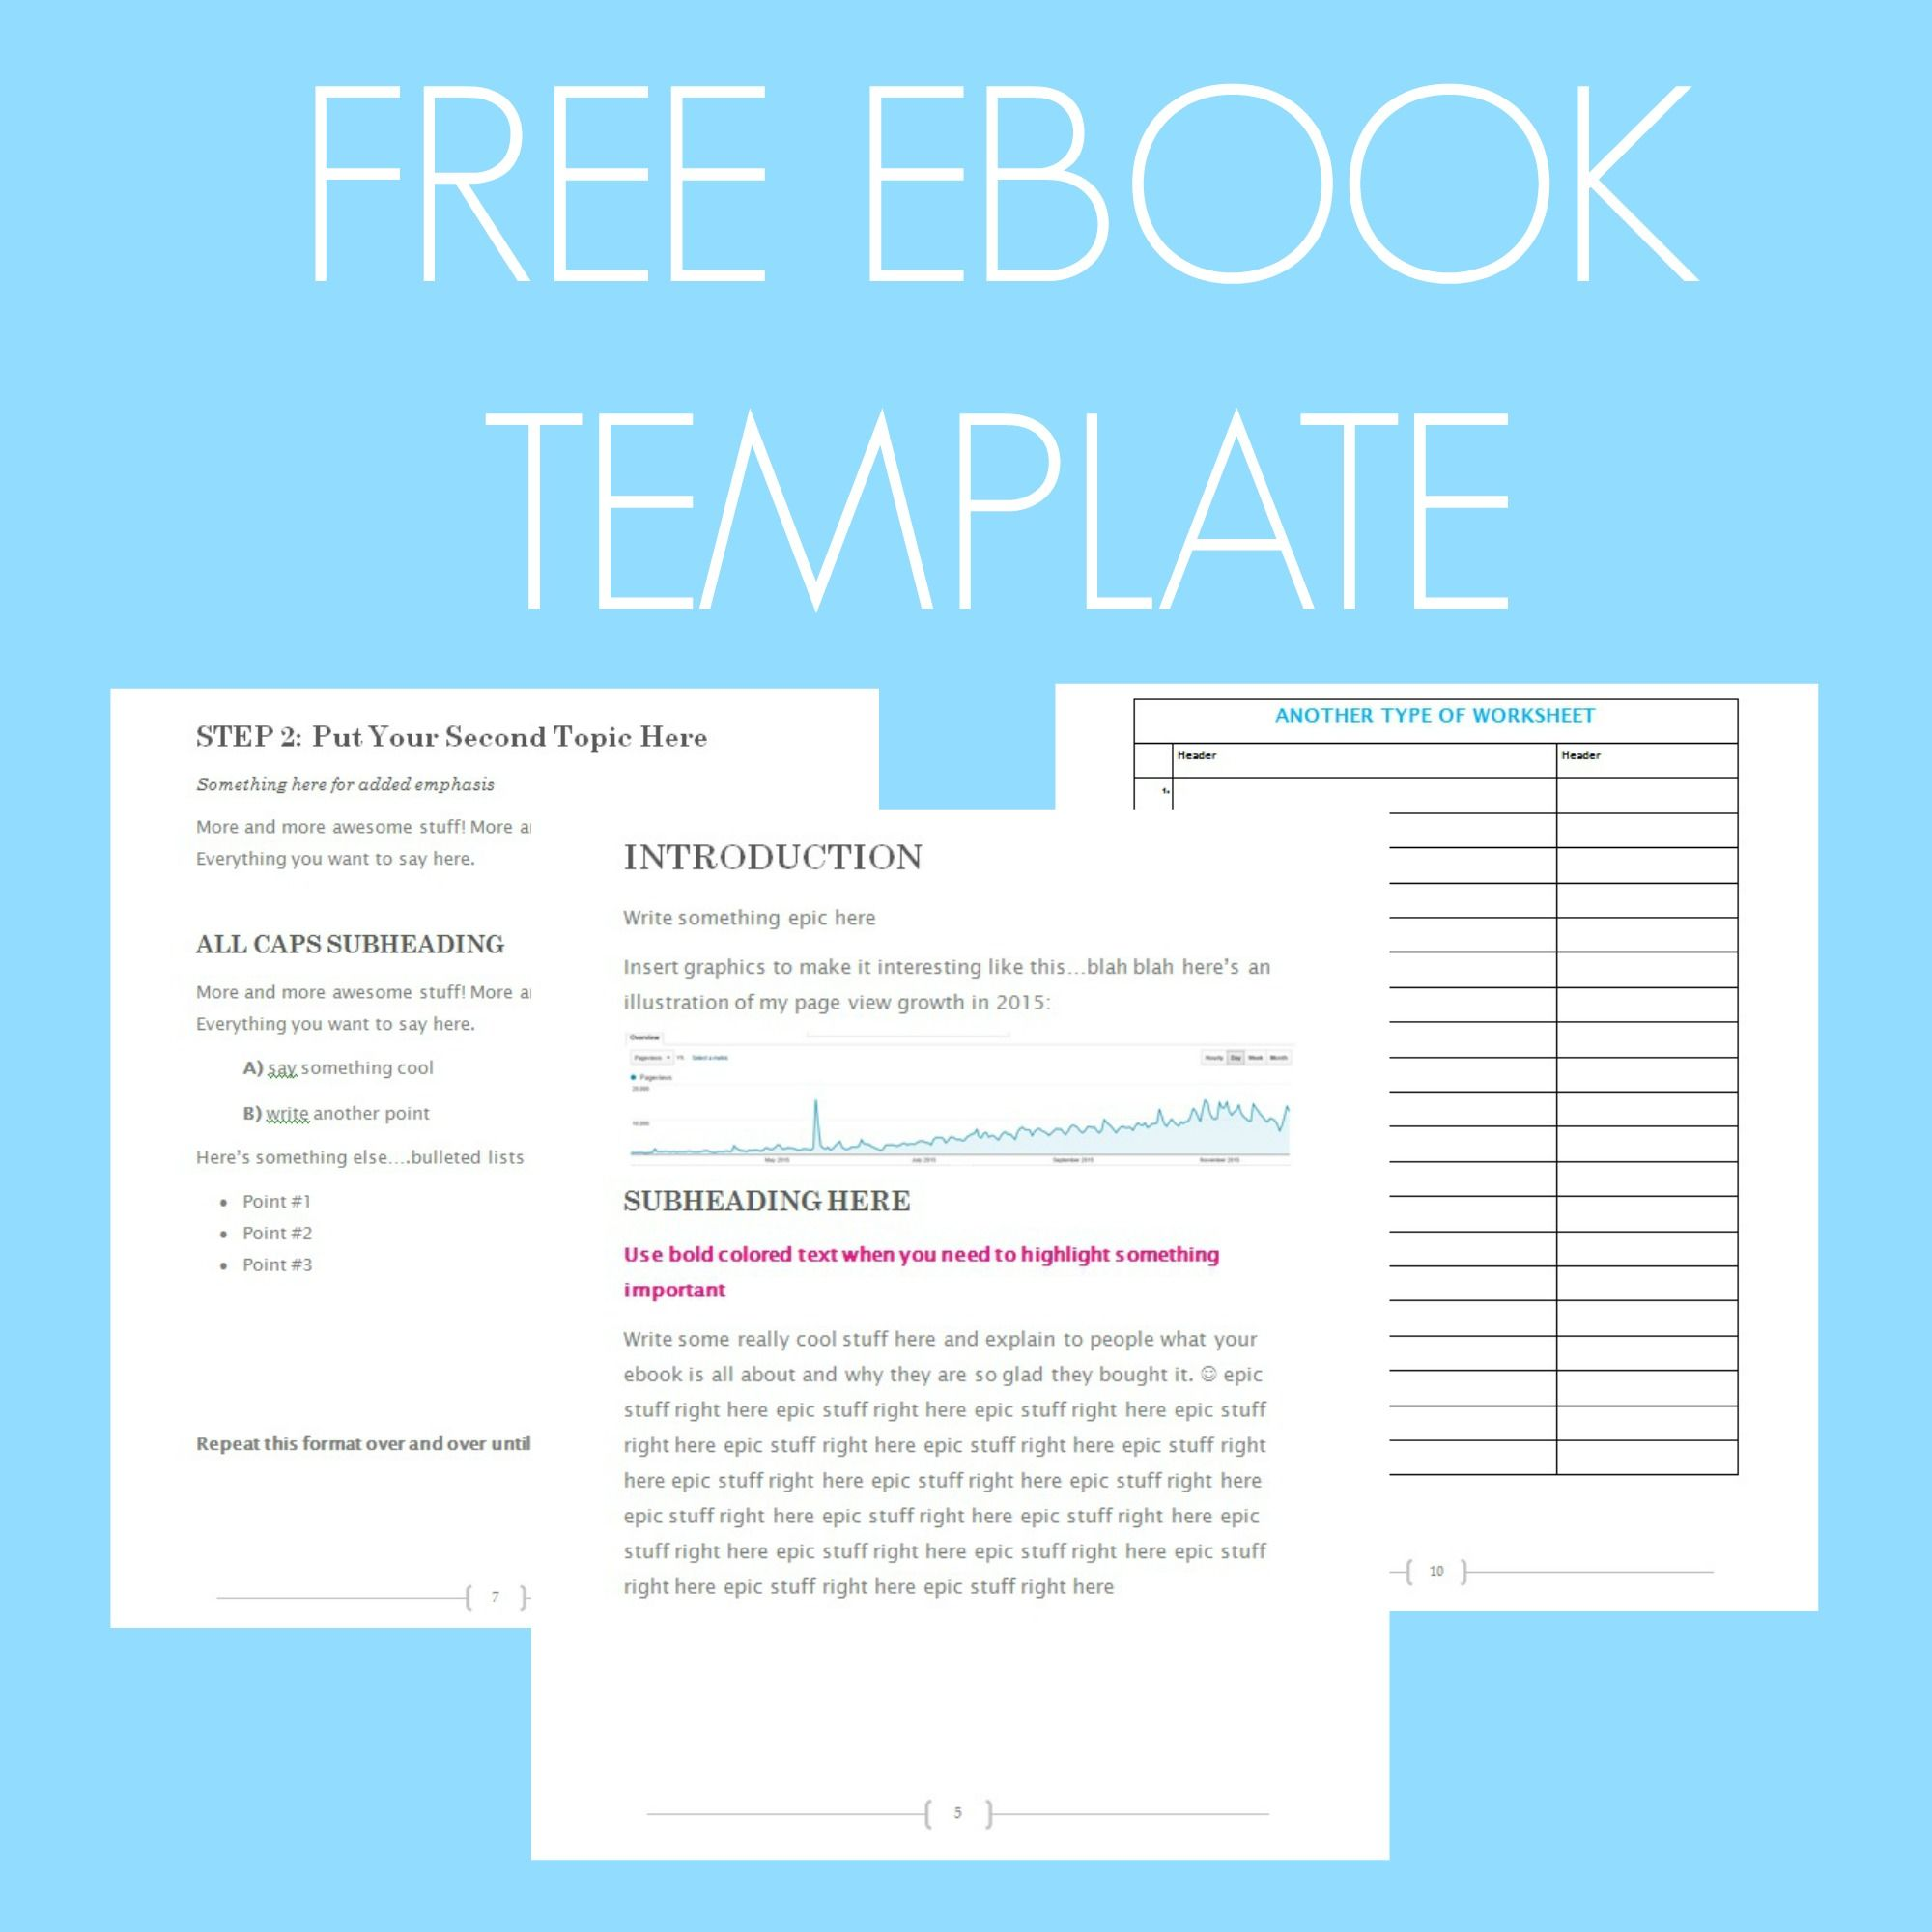 Free Ebook Template Preformatted Word Document Writing